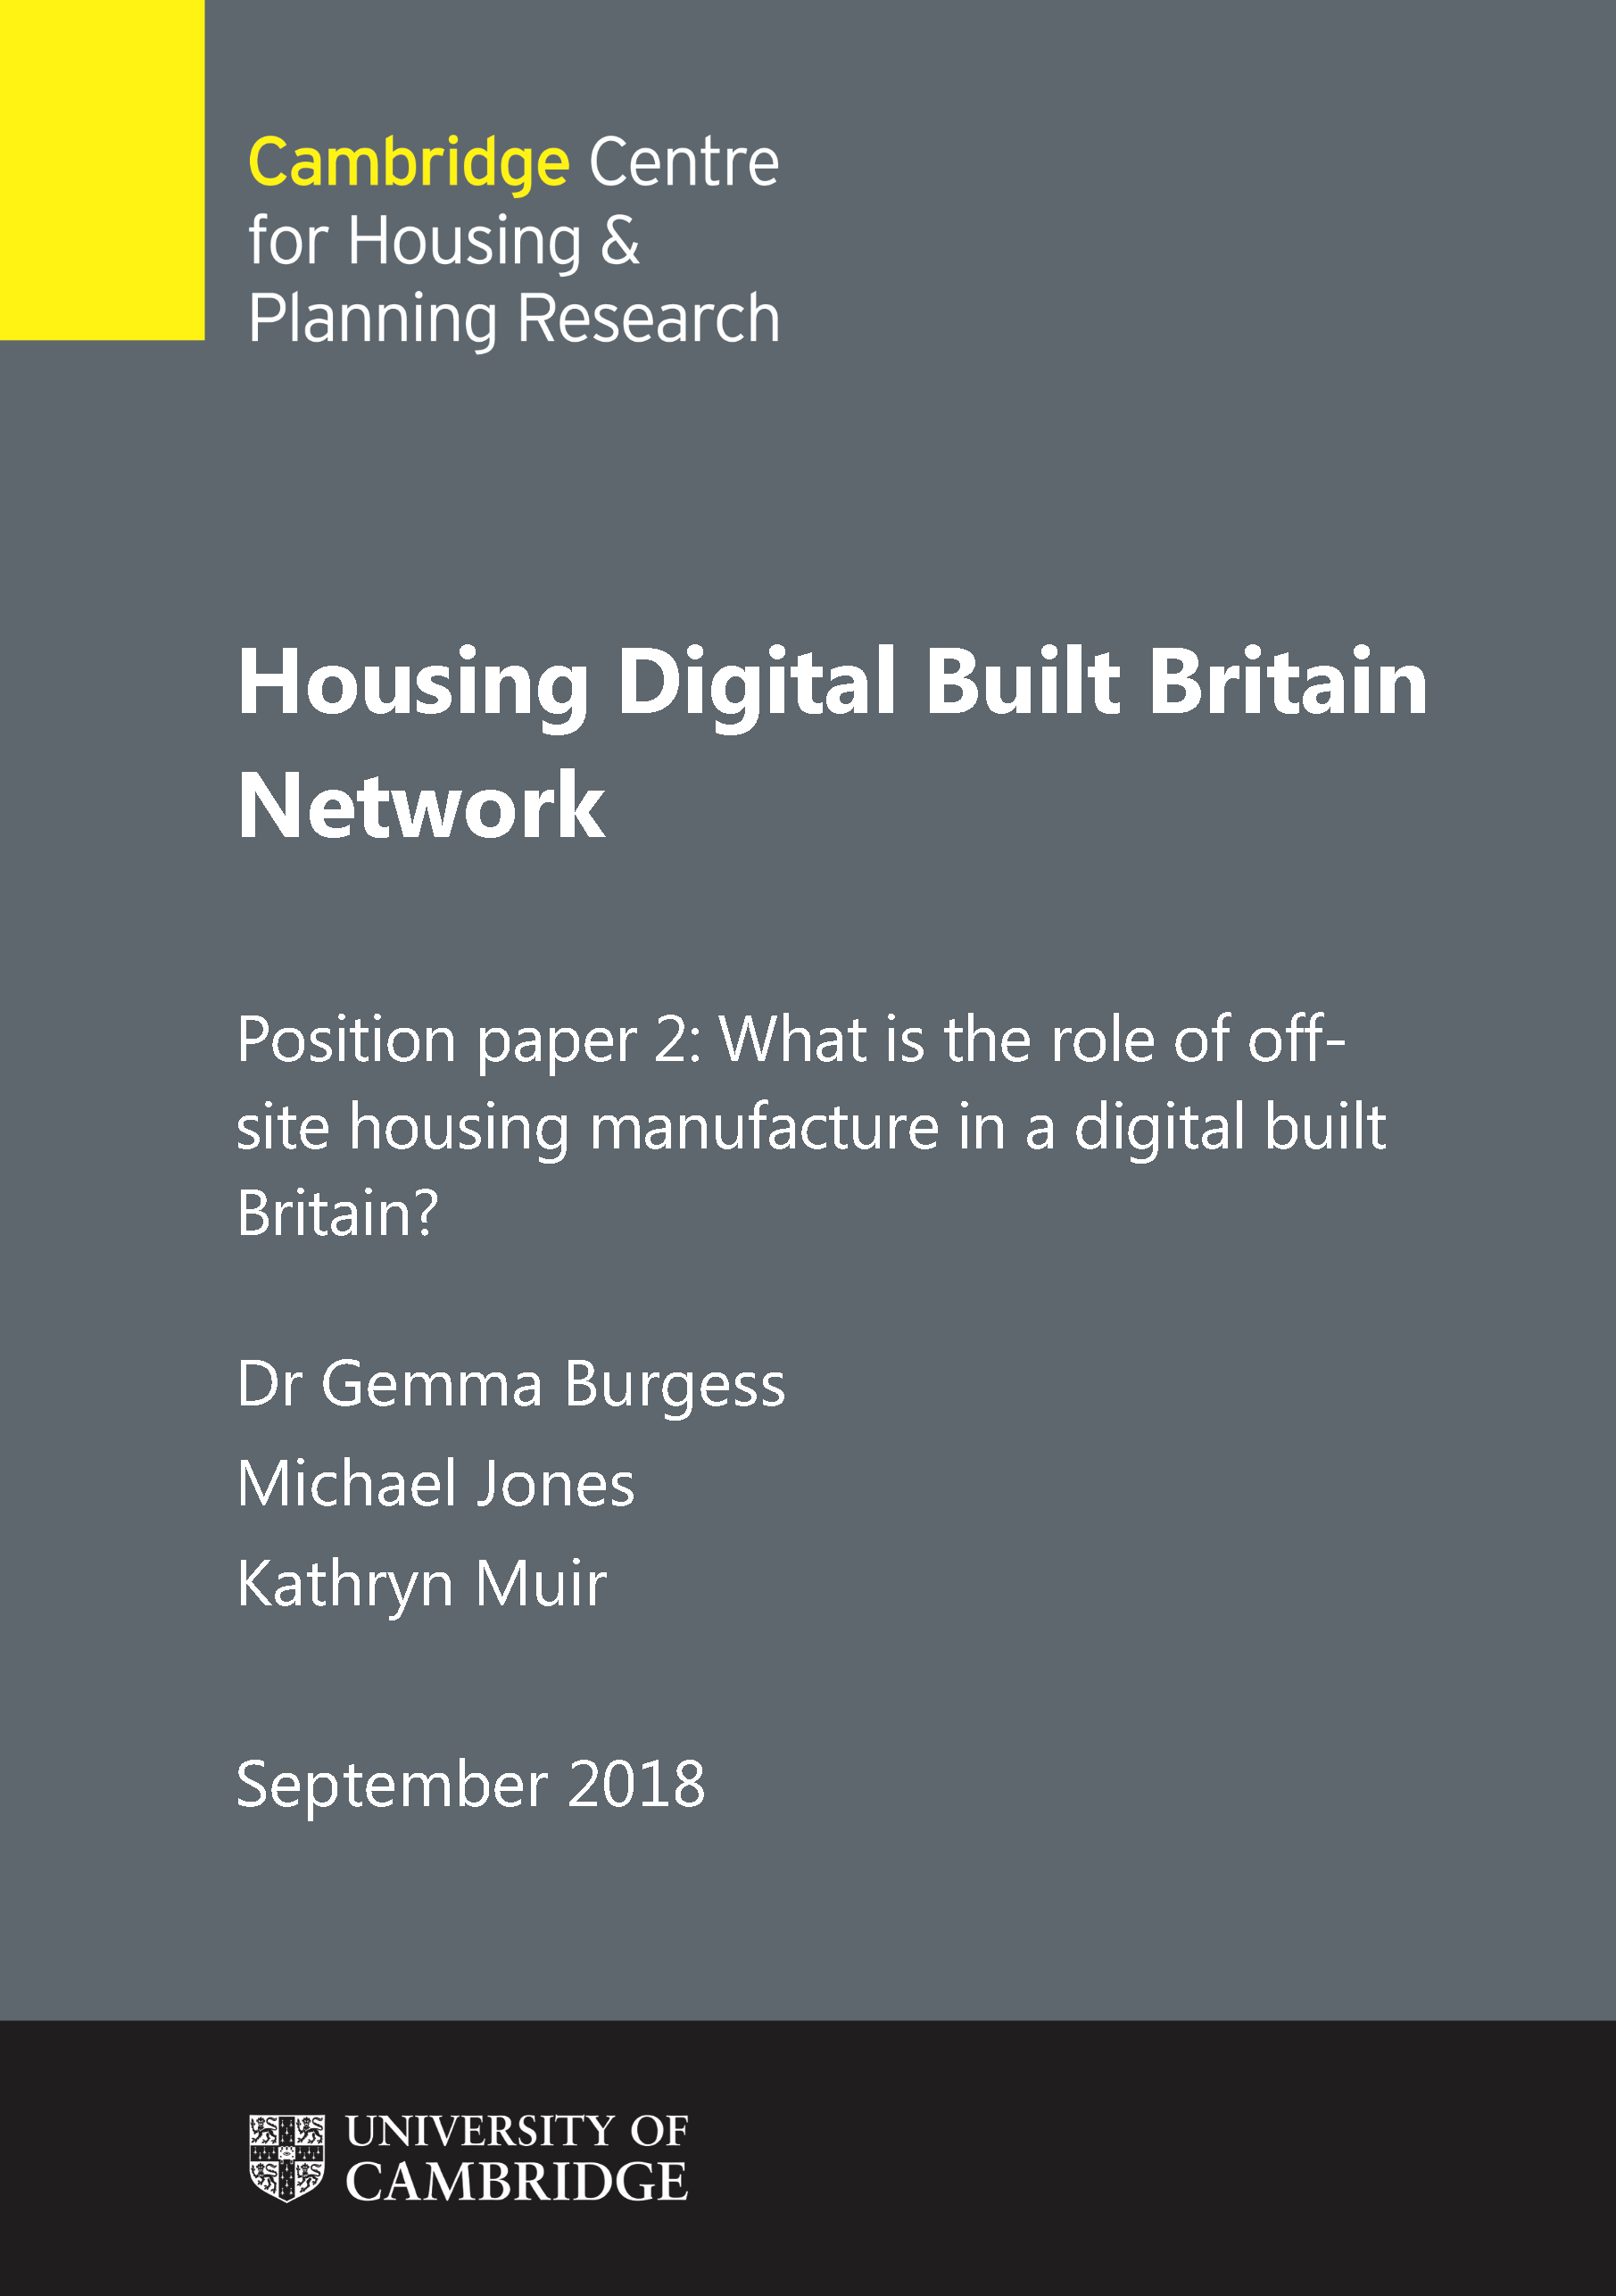 Second position paper for Digital Built Britain Housing Network published